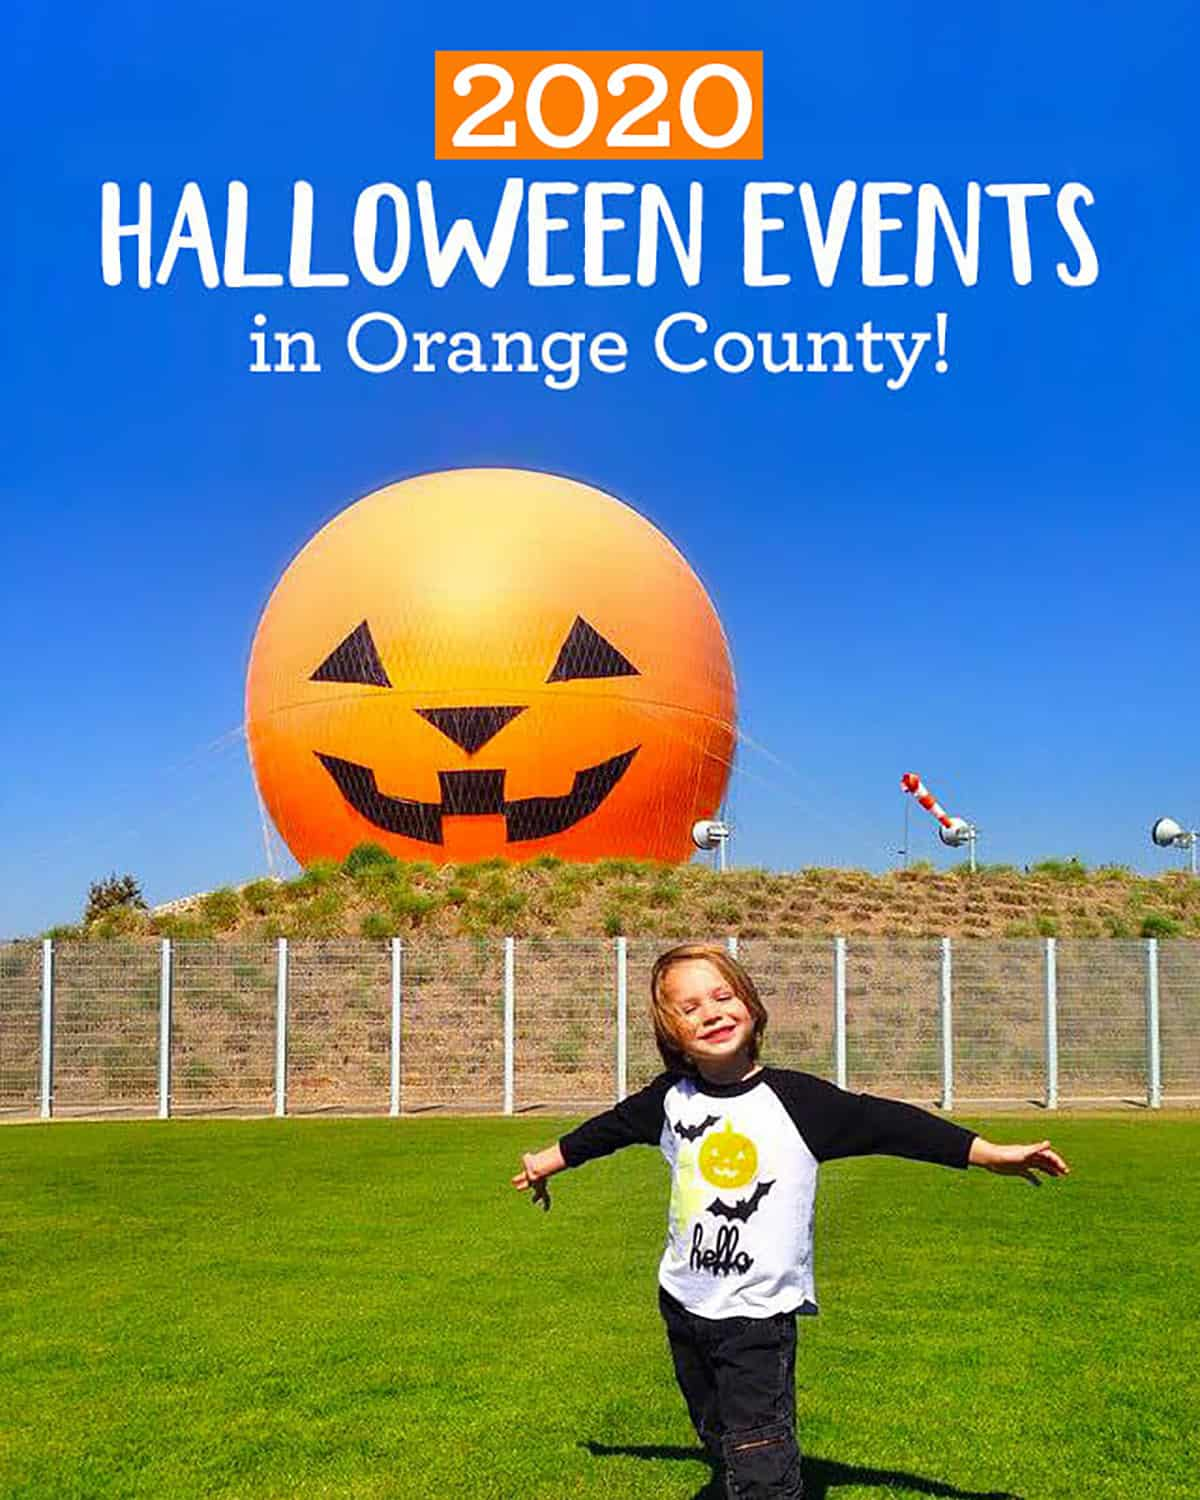 Christmas Events Orange County 2020 Orange County Halloween Events for Kids 2020   Popsicle Blog